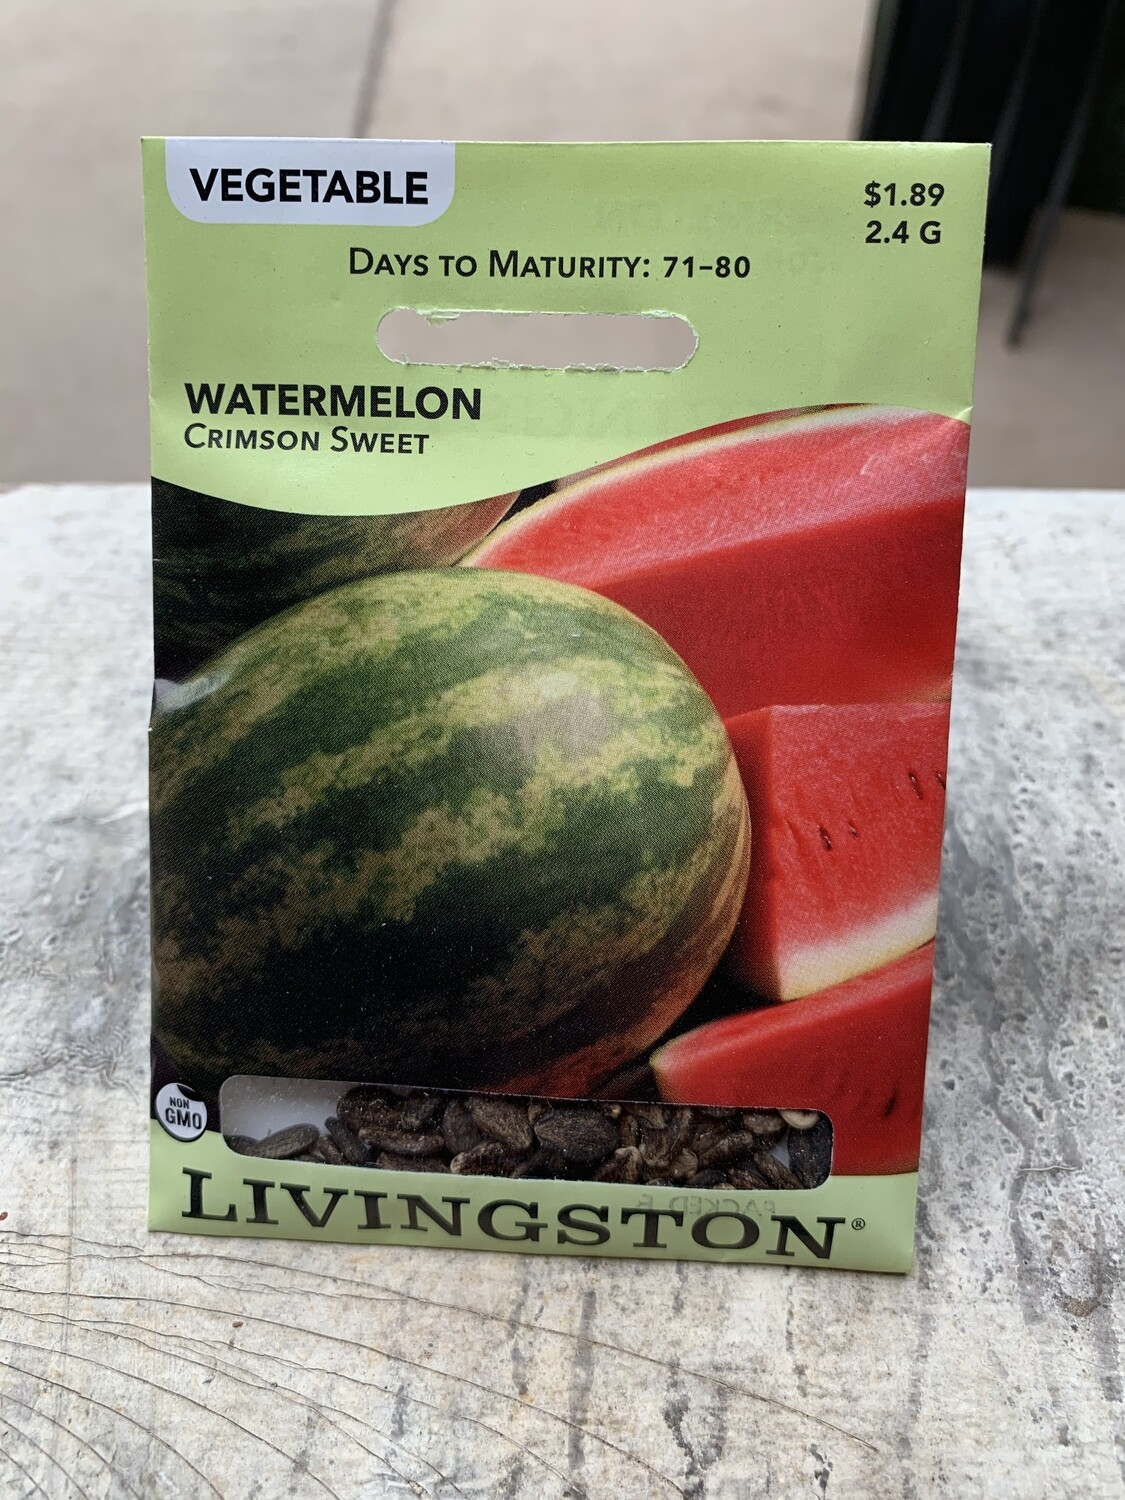 Watermelon Crimson Sweet (Seed) $1.89